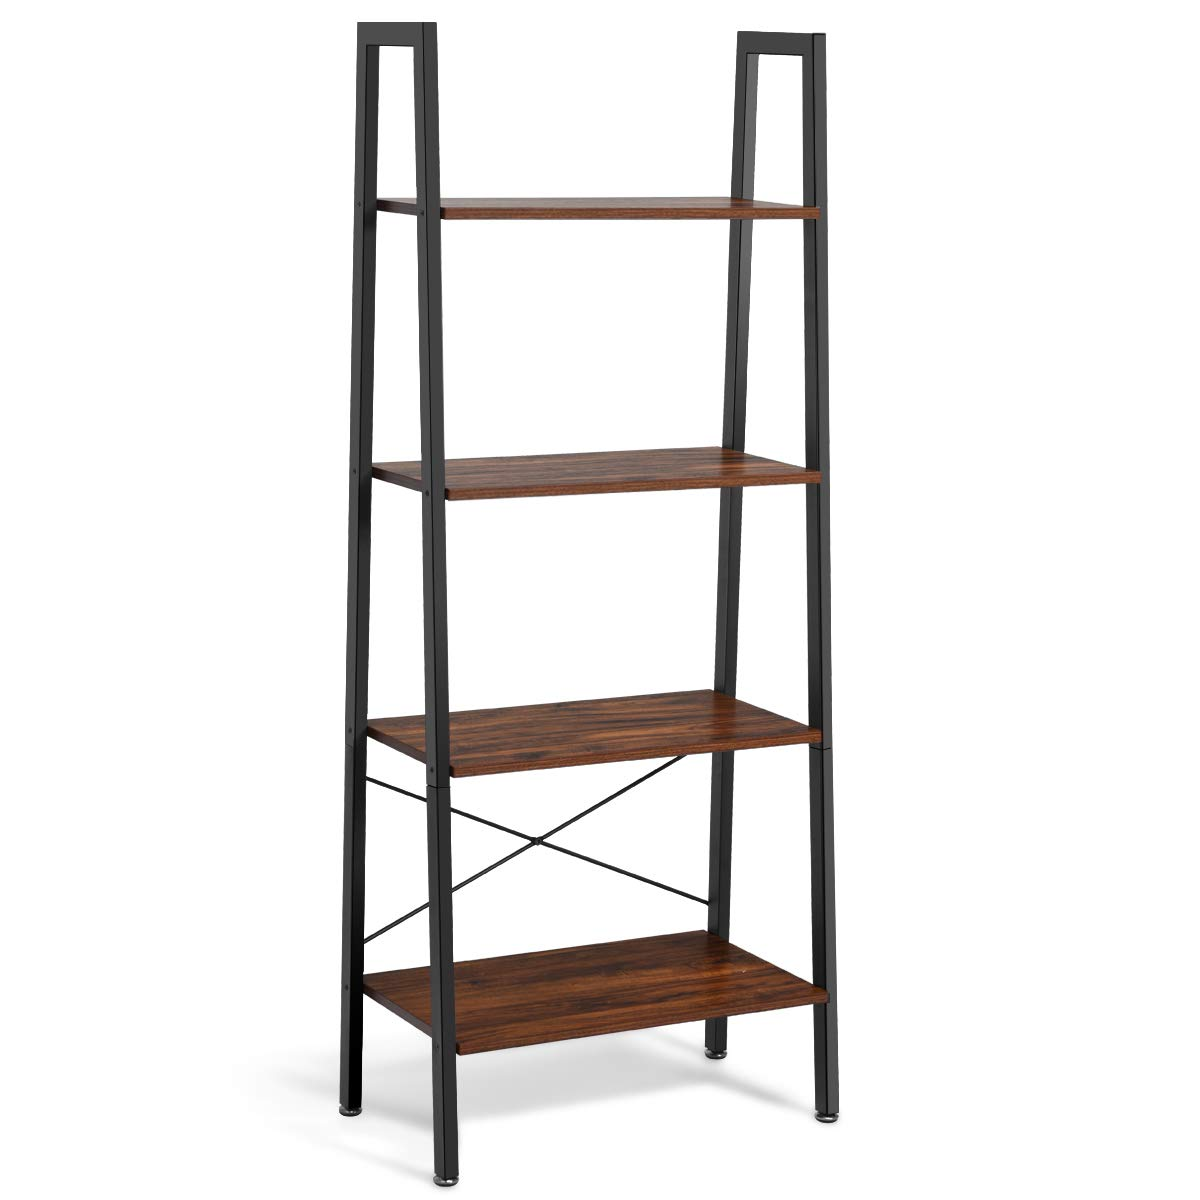 Giantex Ladder Shelf 4-Tier Industrial Bookshelf Storage Rack Shelves for Home and Office Use, Wood Display Rack with Metal Frame (Rustic Brown) by Giantex